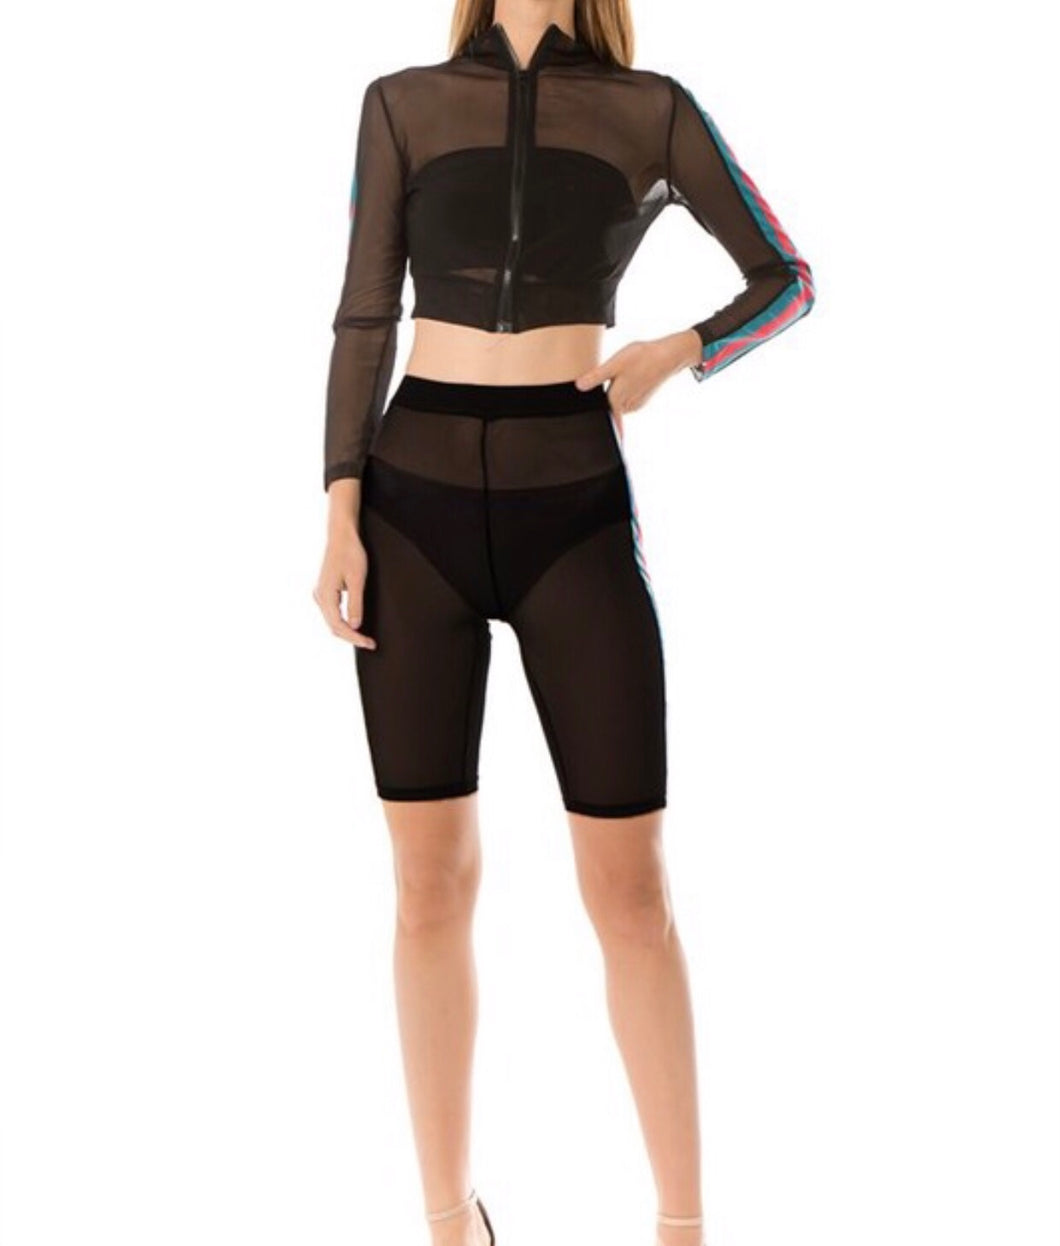 See Through Sexy Look Stripes Print Front Zipper Shorts Pairing Regular Fit in Black